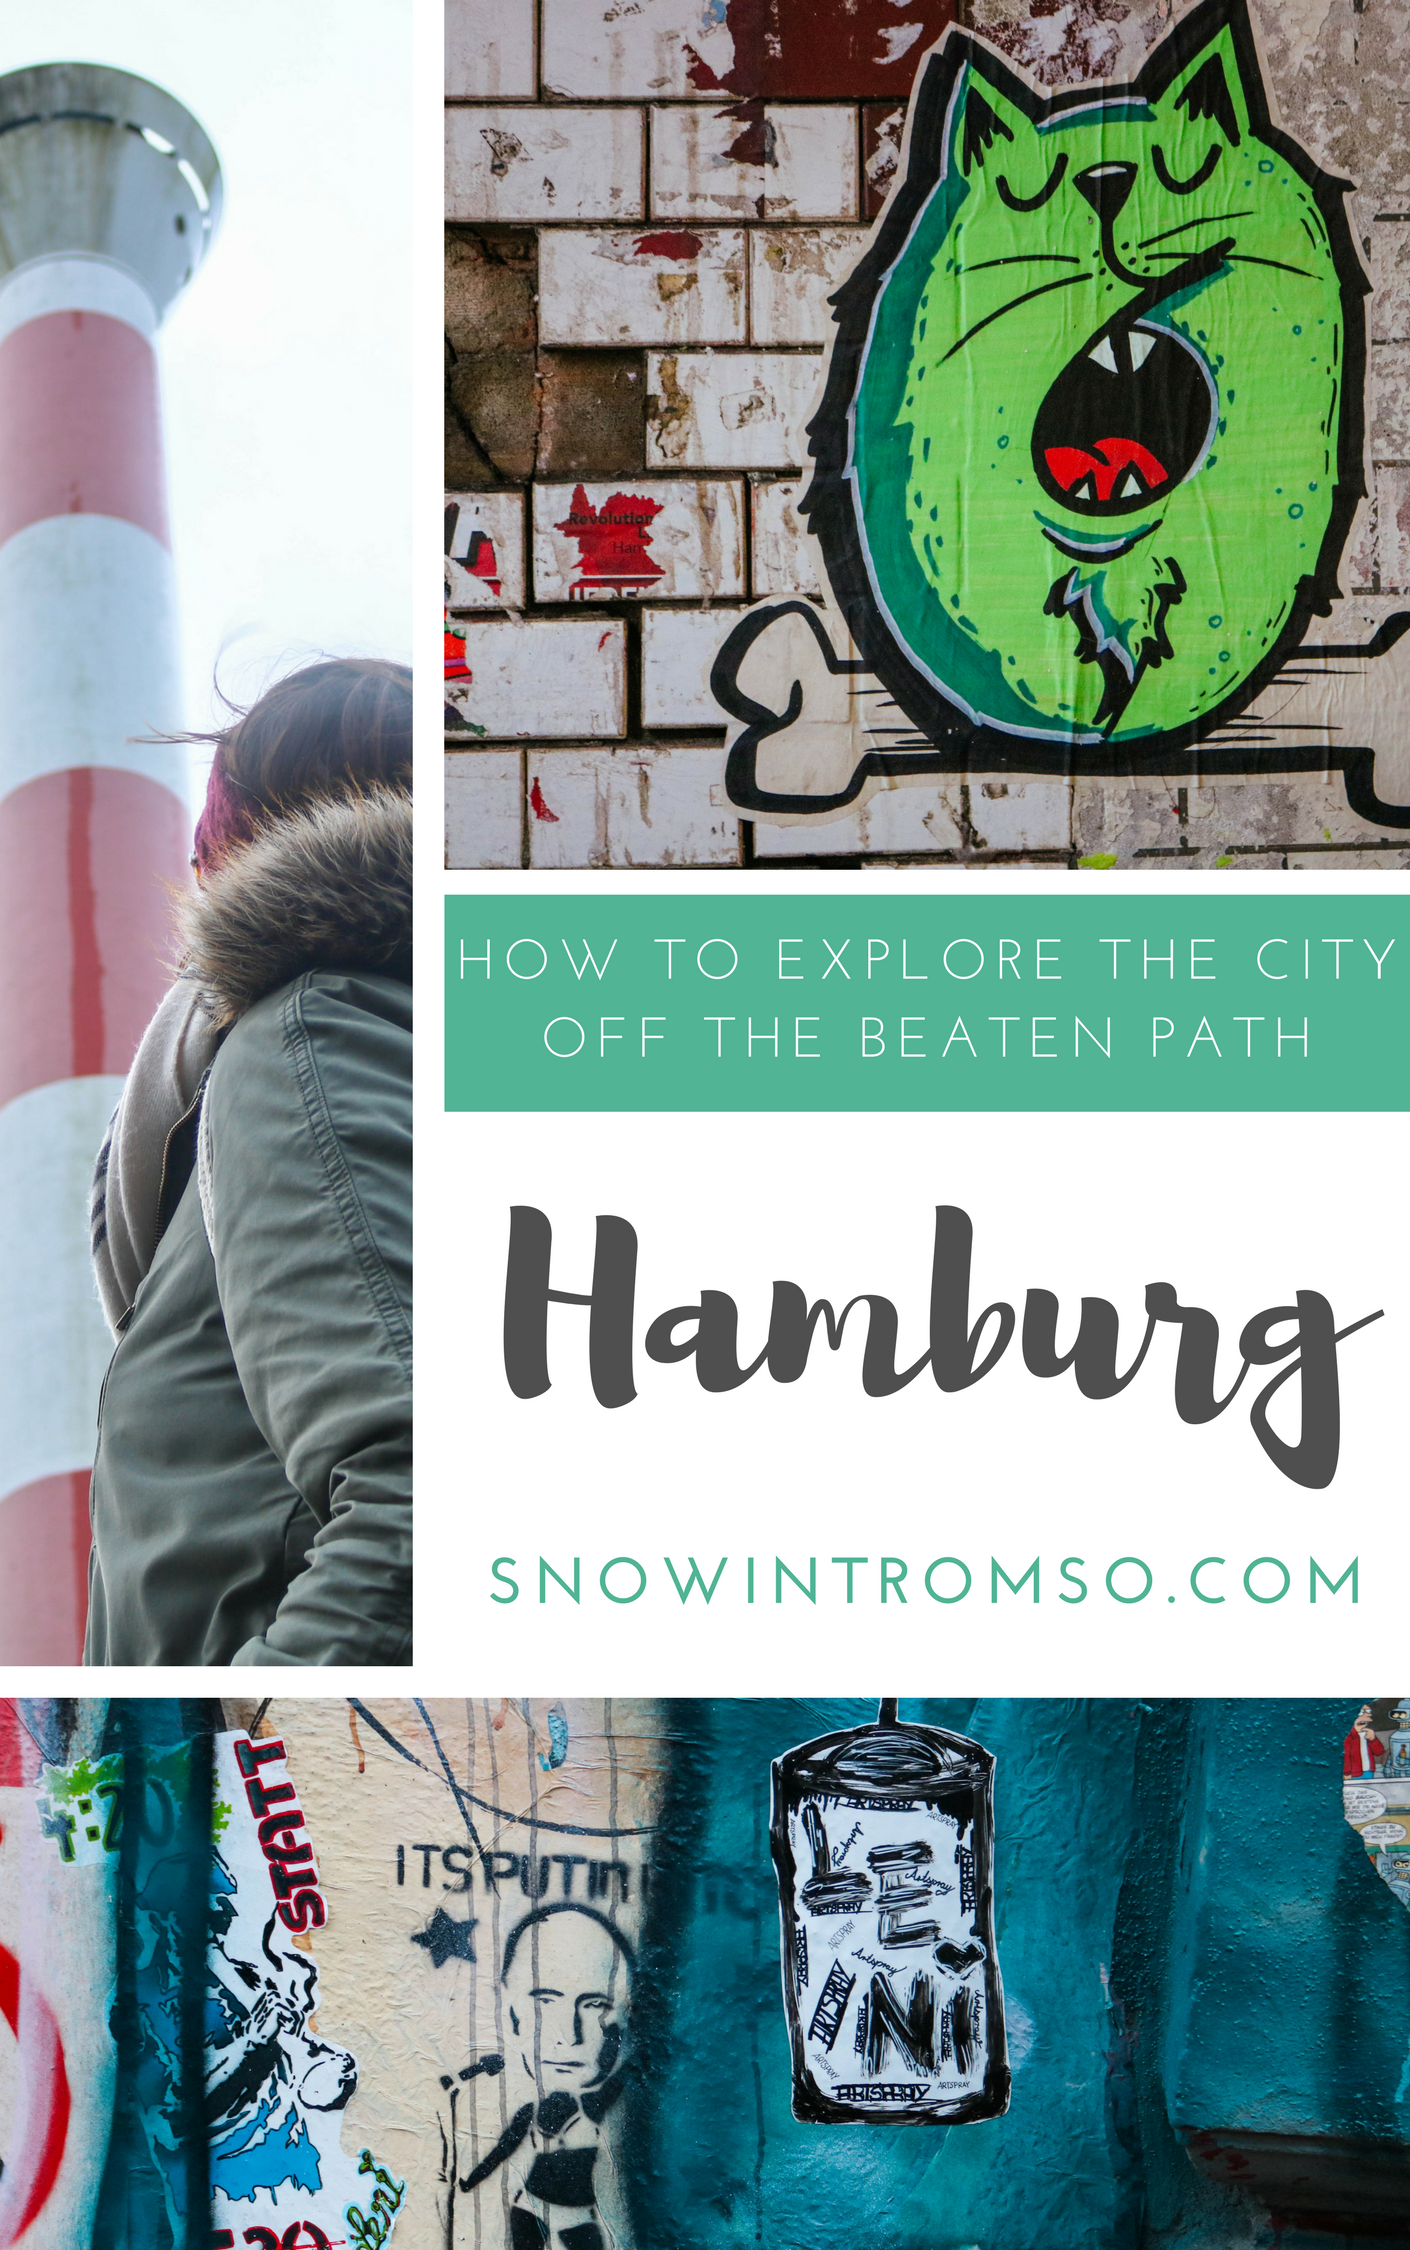 Headed to Hamburg and looking into exploring the city off the beaten path? Read this!